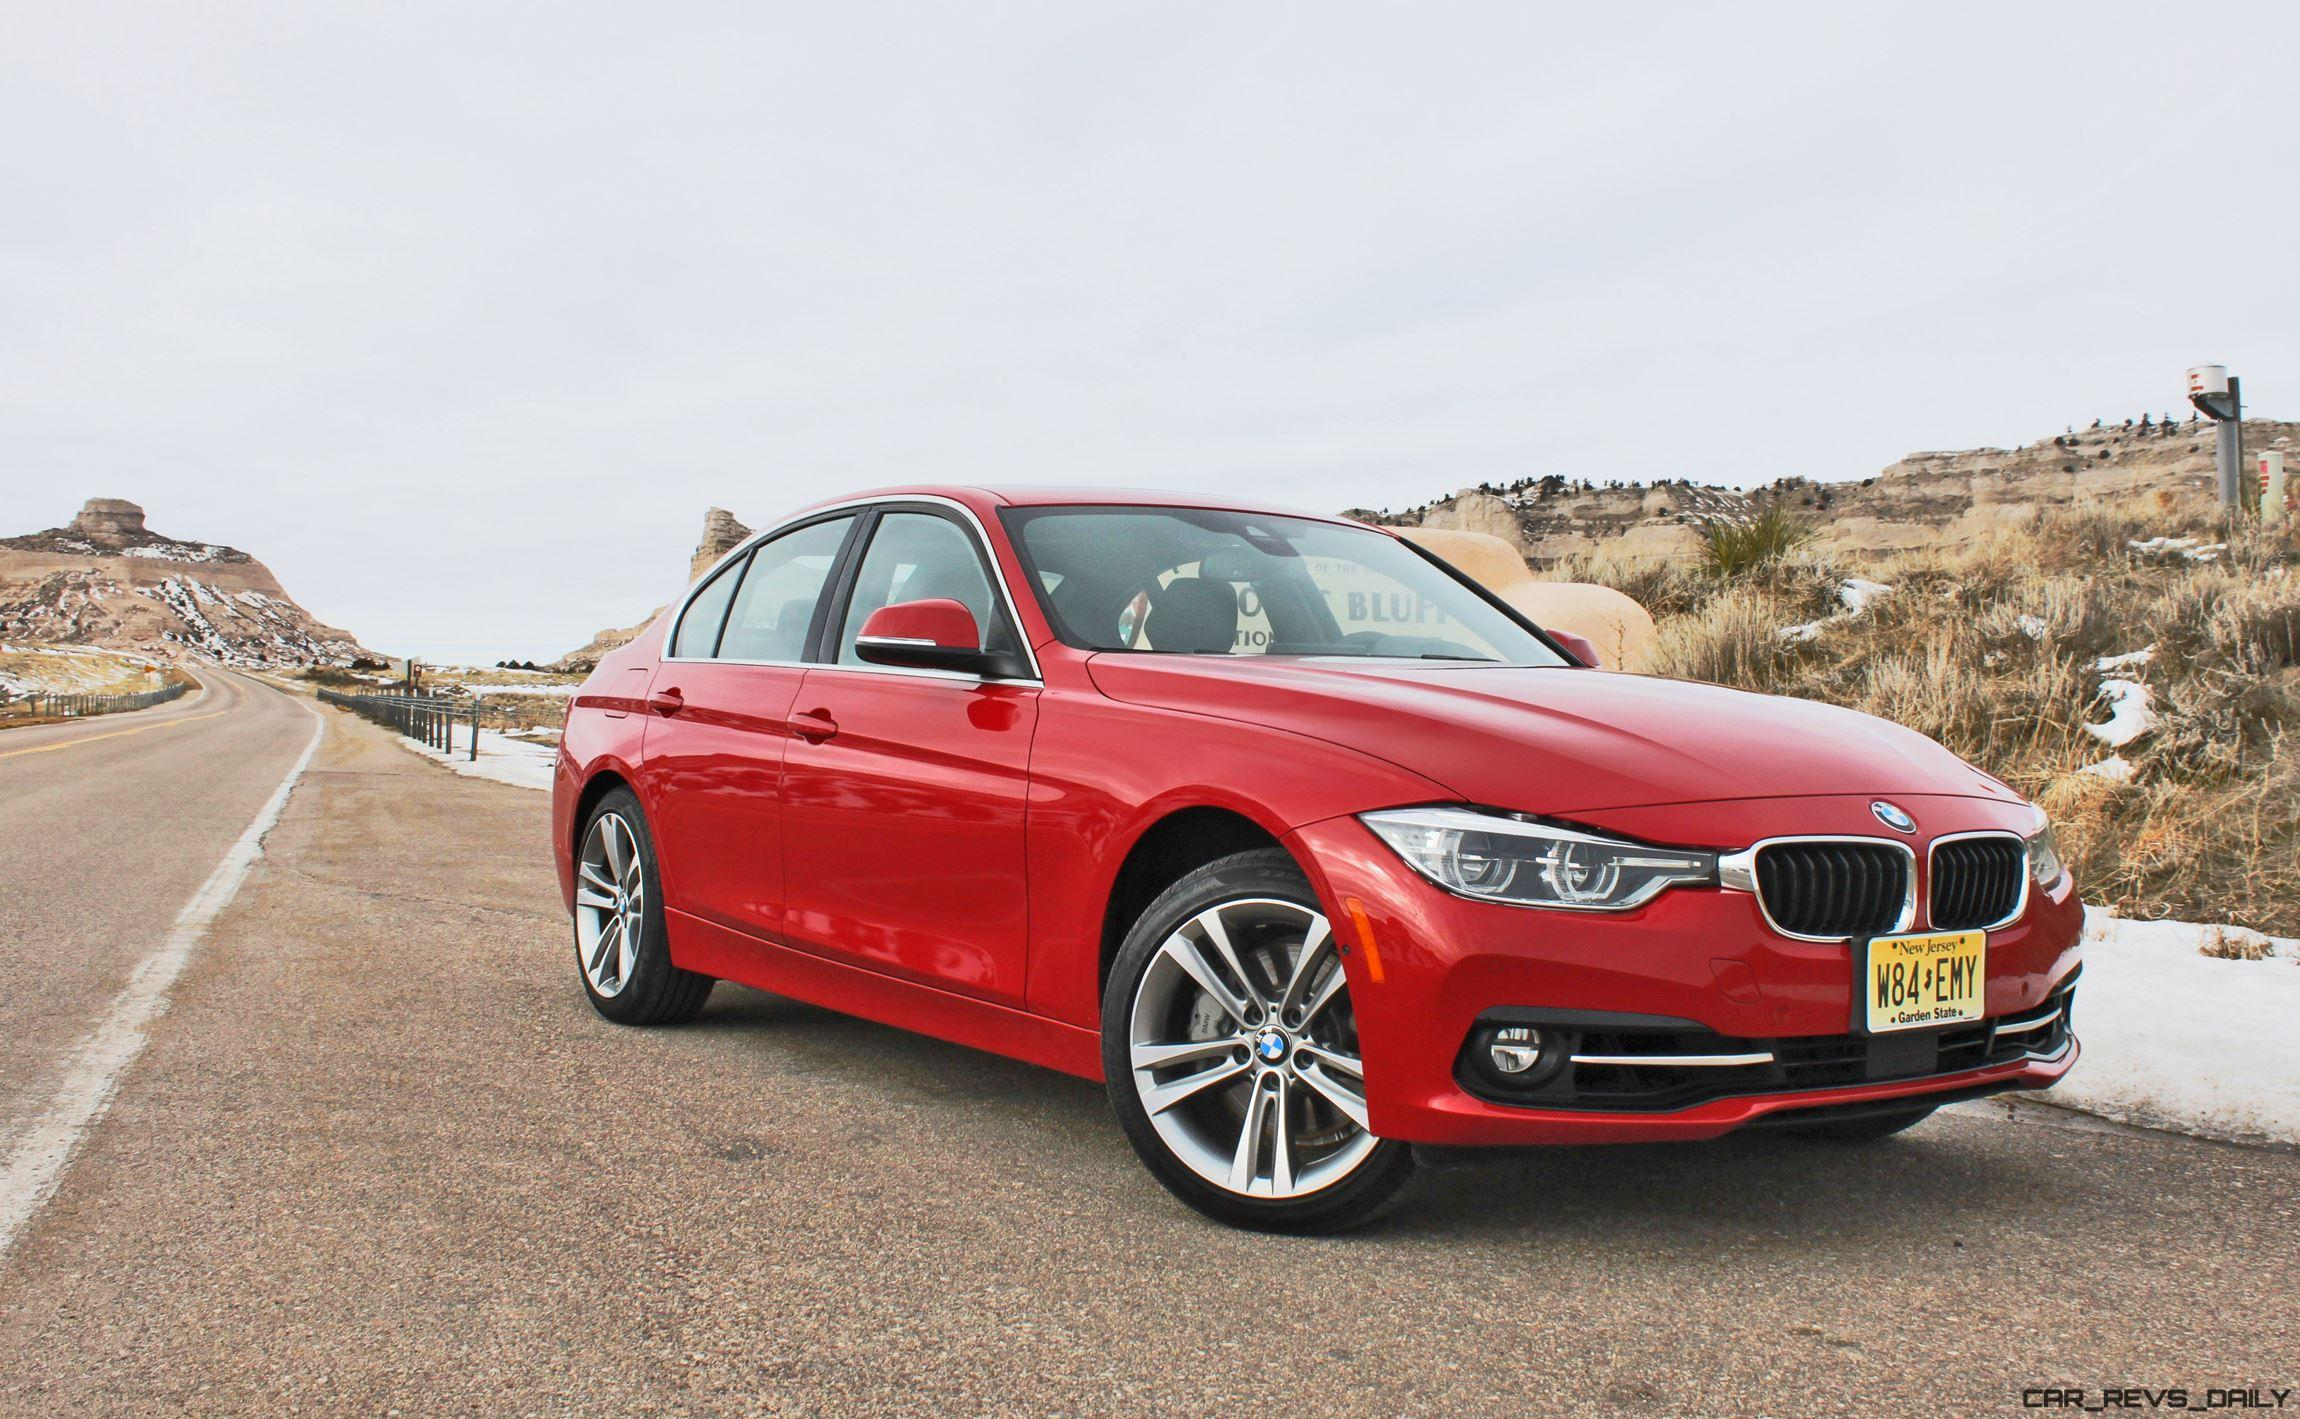 road test review 2016 bmw 340i xdrive by tim esterdahl 8. Black Bedroom Furniture Sets. Home Design Ideas